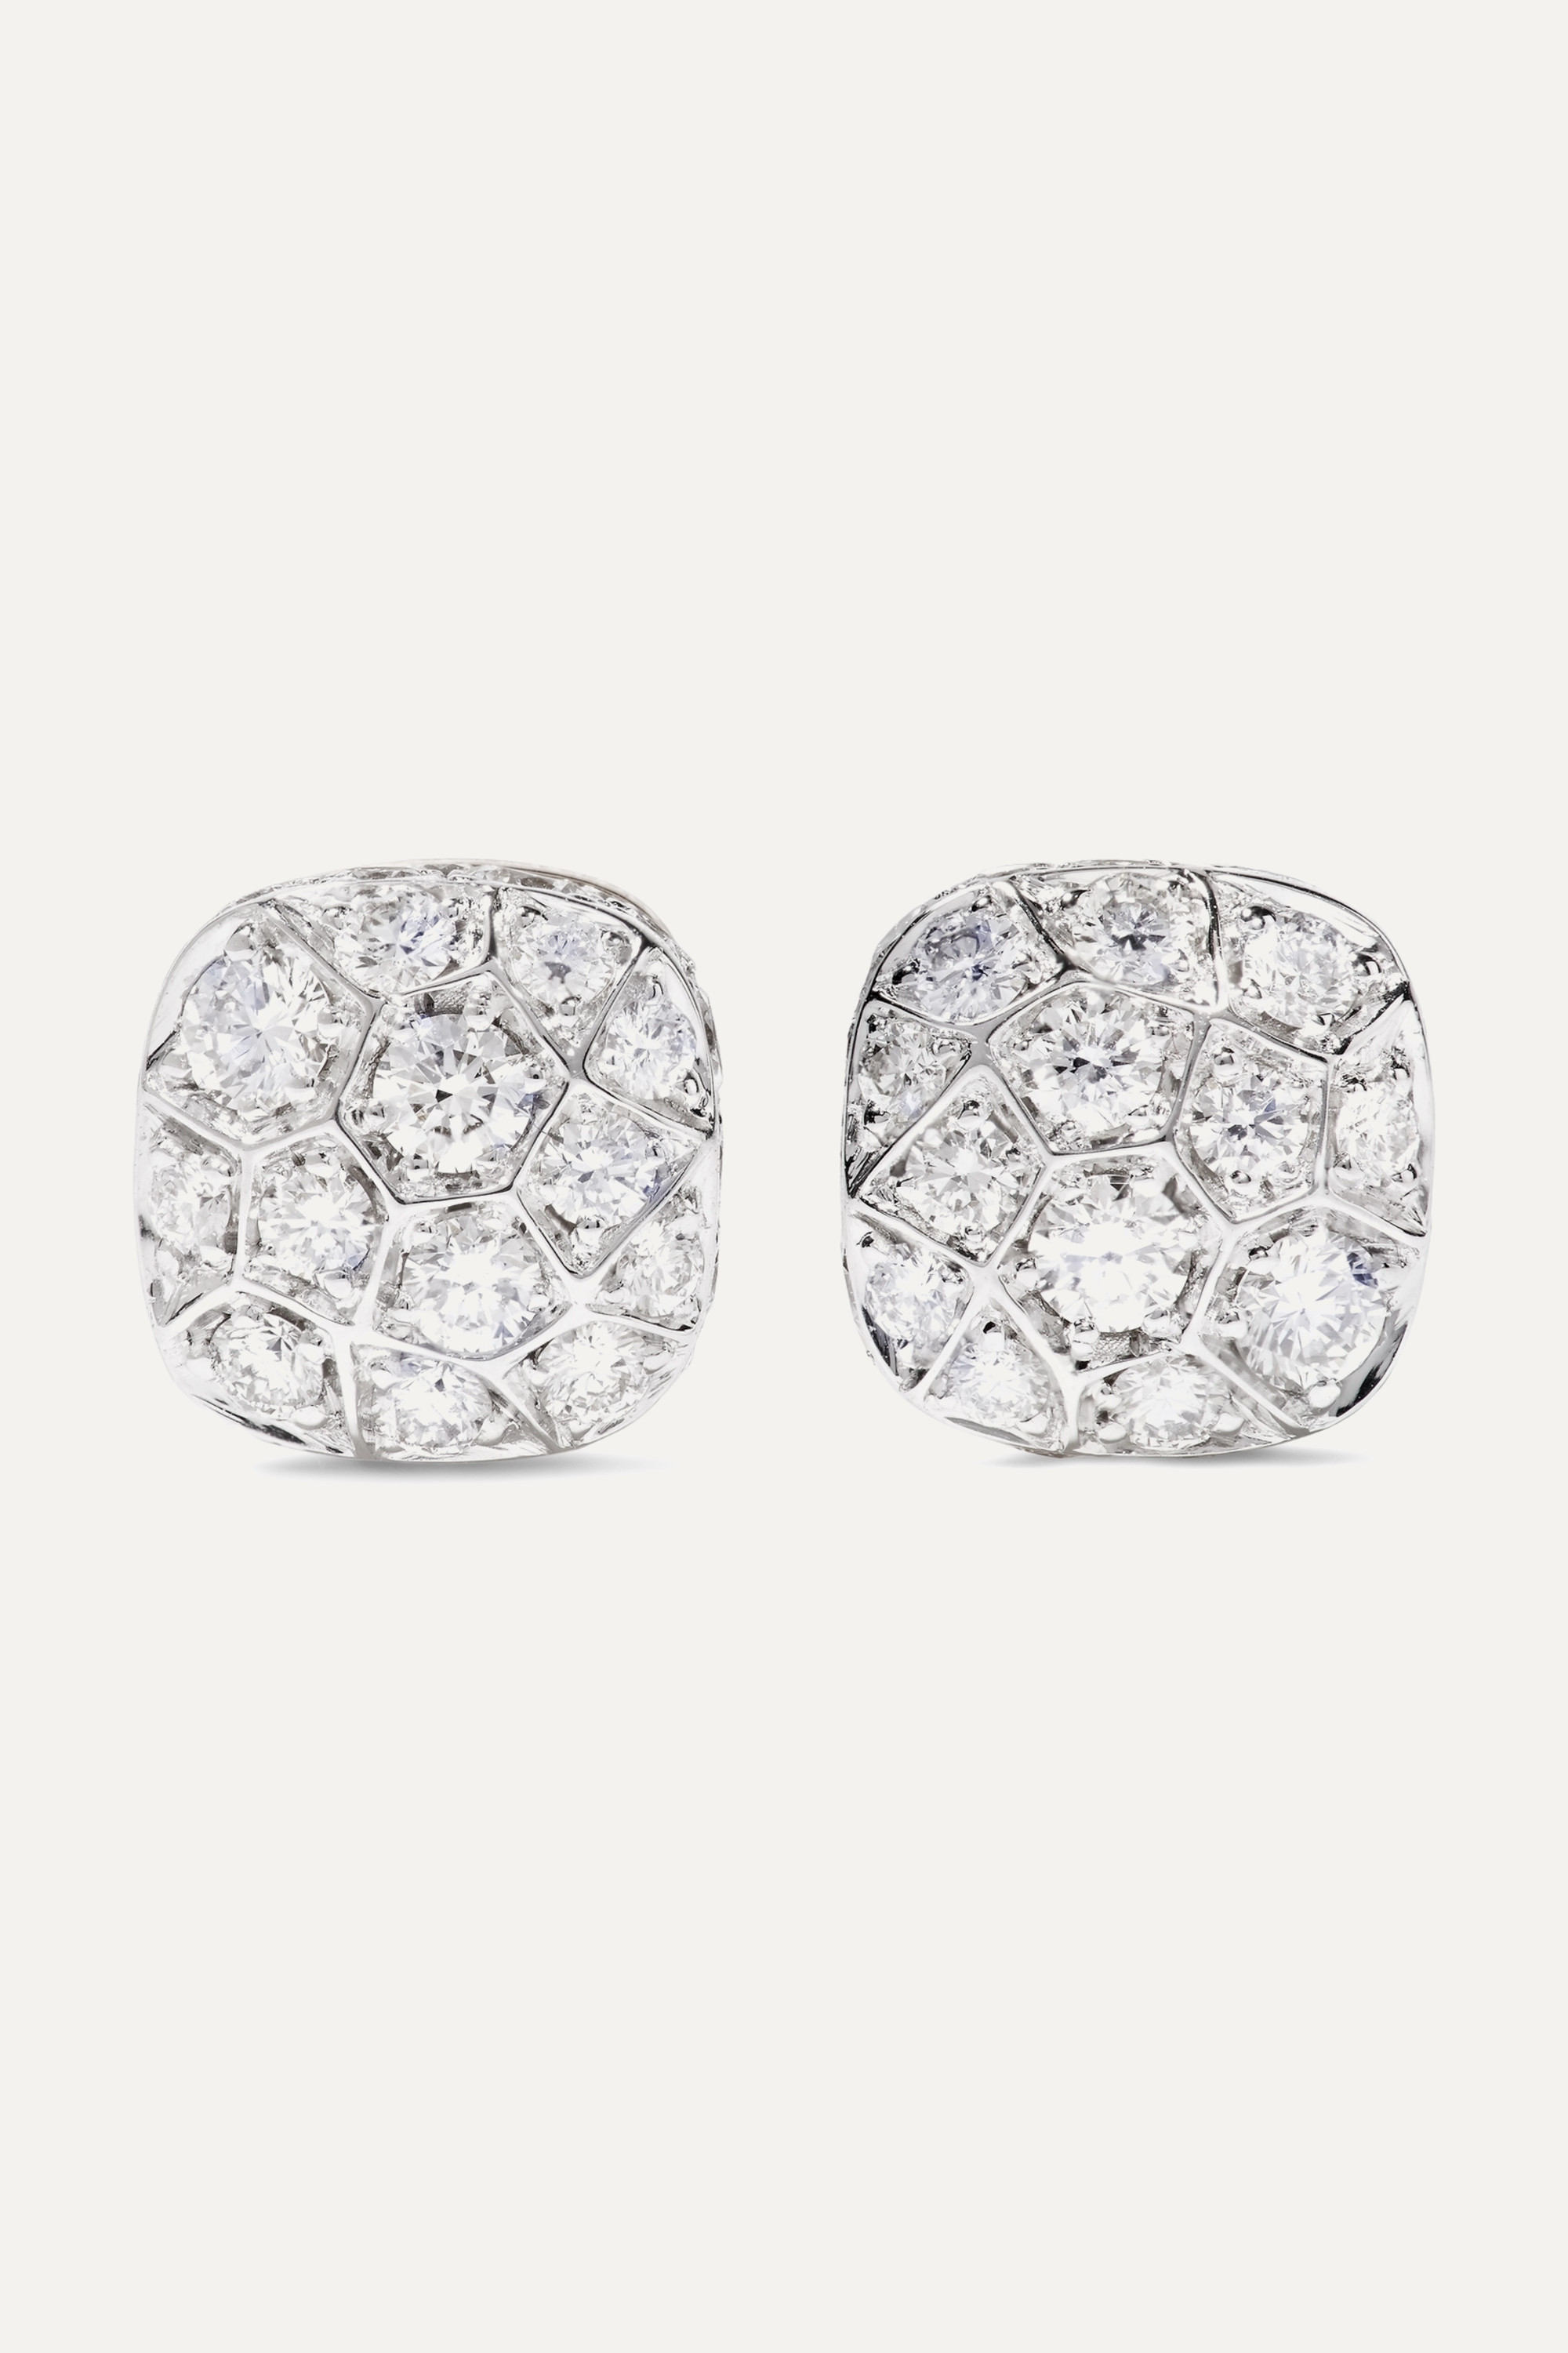 POMELLATO Nudo Solitaire 18-karat rose and white gold diamond earrings